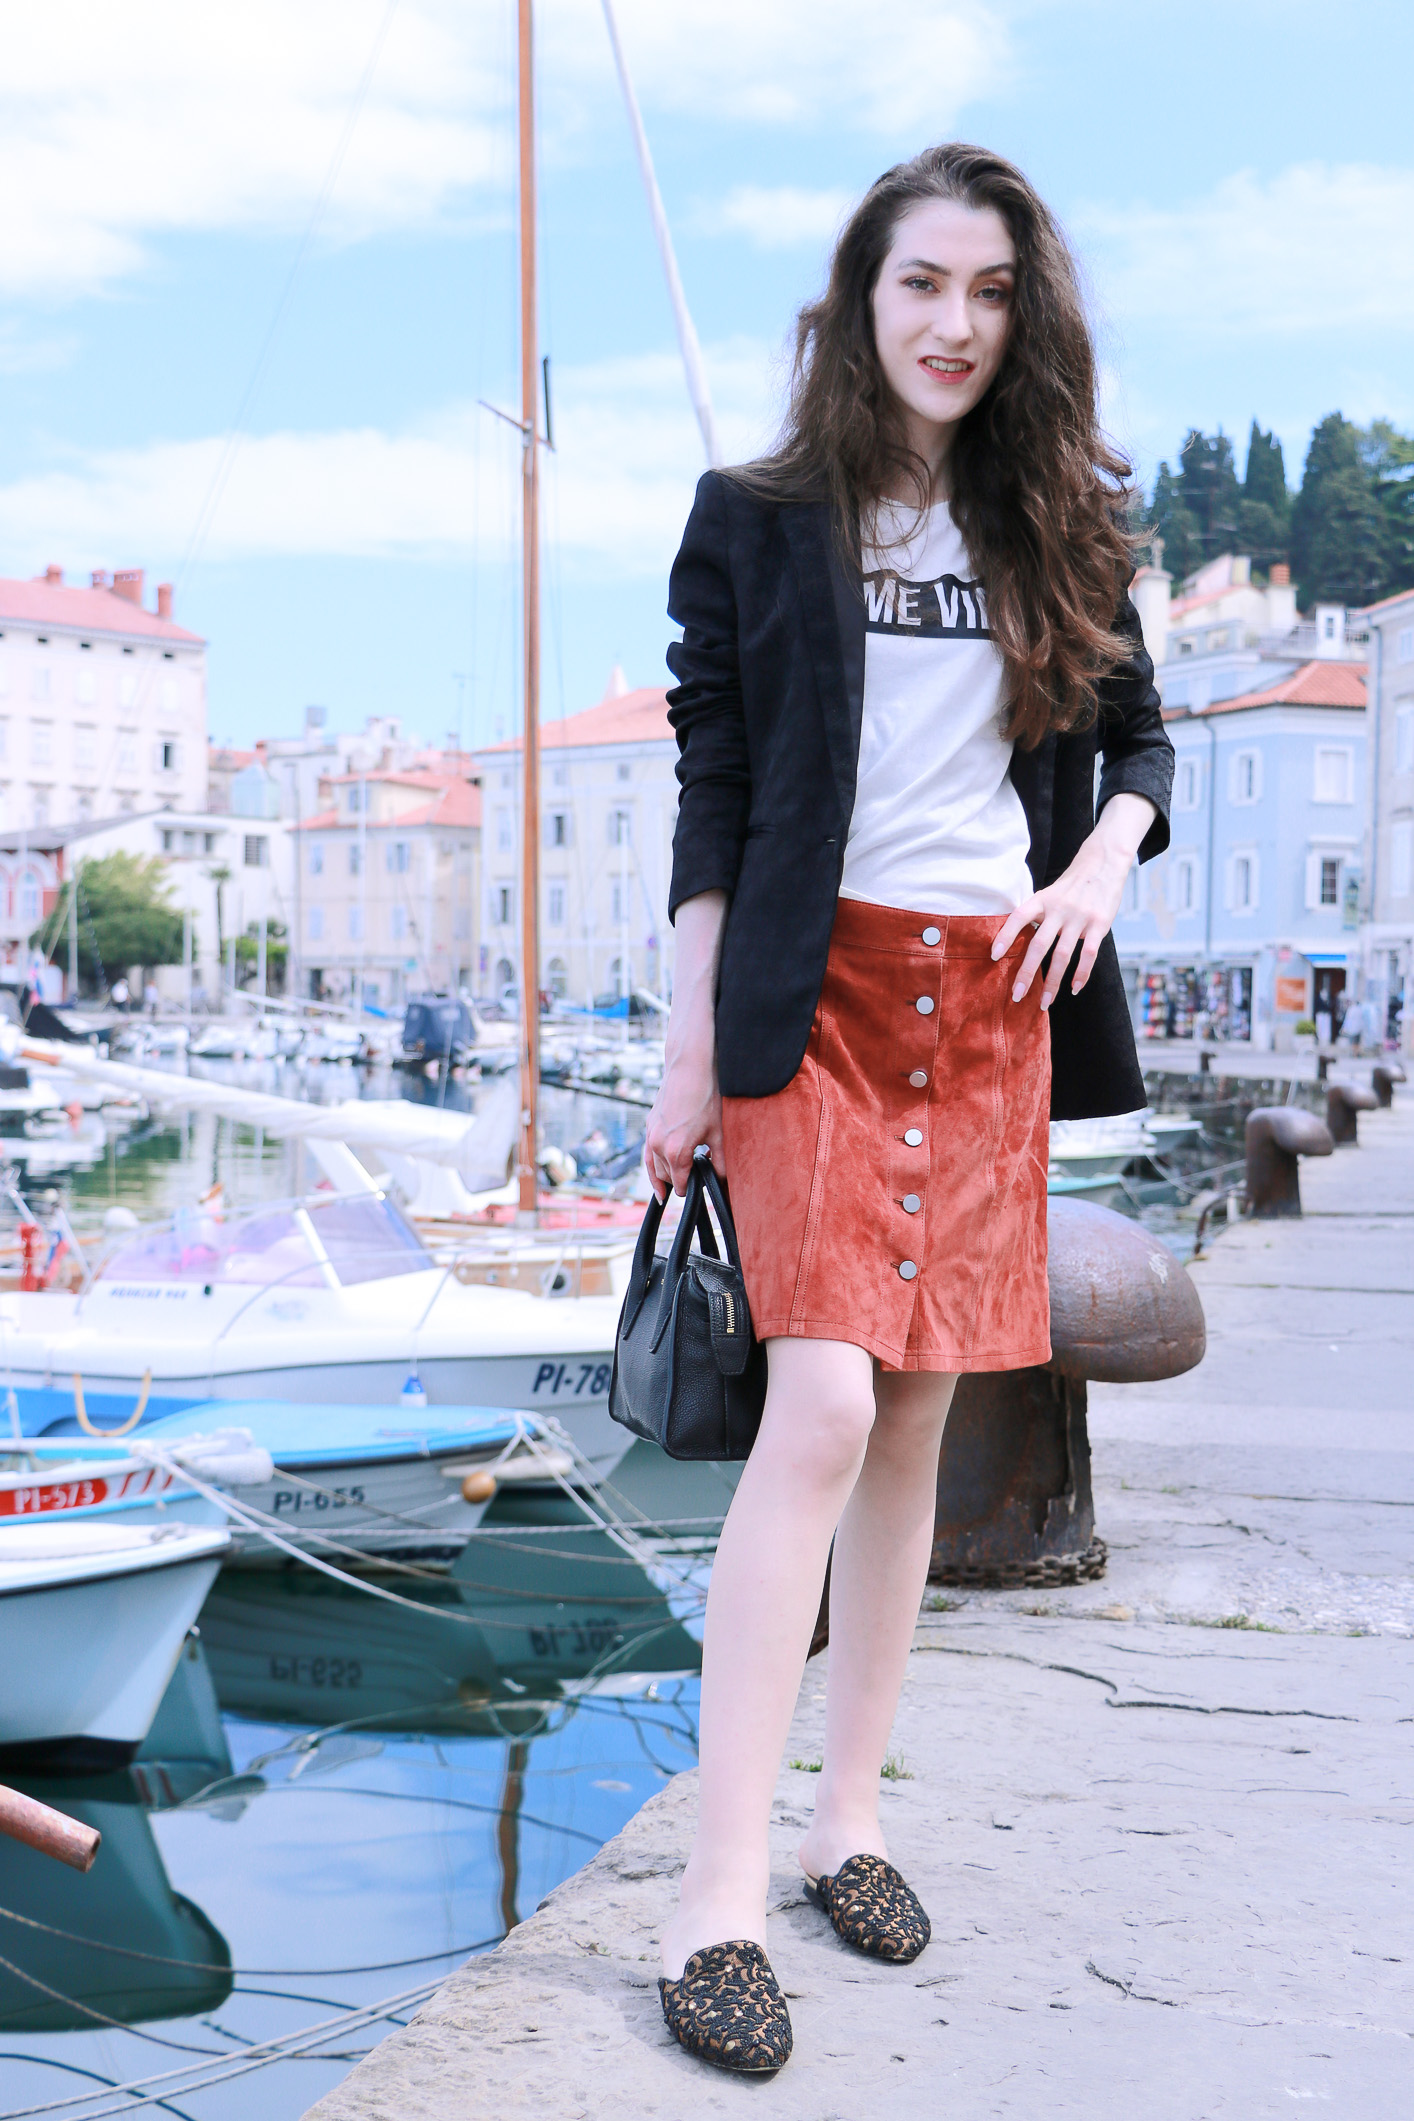 Fashion blogger Veronika Lipar of Brunette From Wall Street sharing her summer street style on the streets of the old romantic seaside town Piran